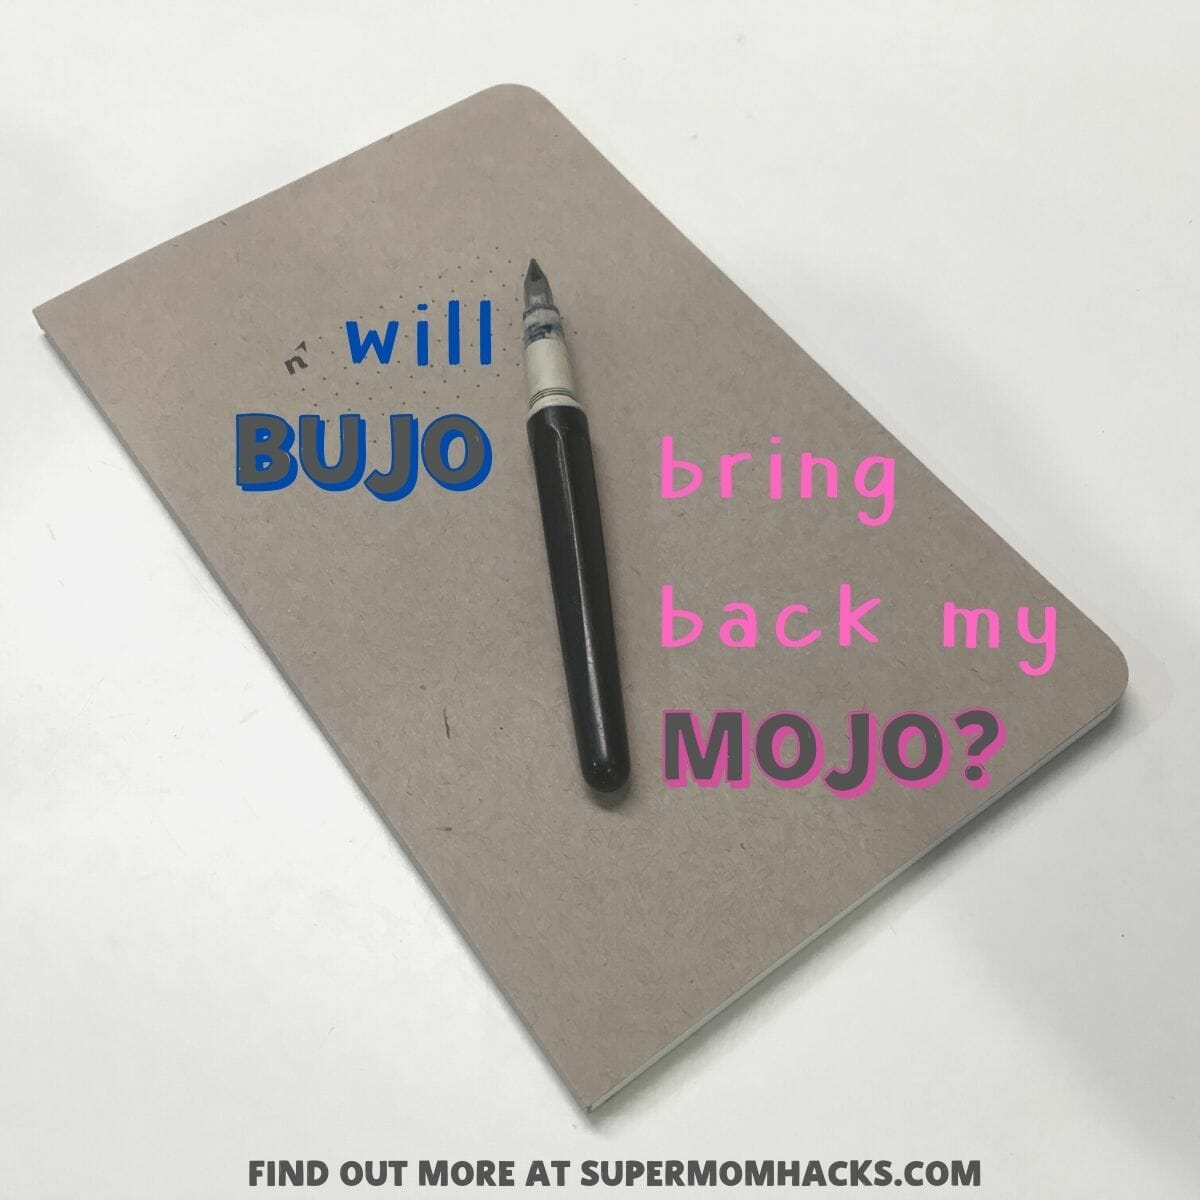 Bringing back my mojo (that pre-parenthood illusion of control over my life) would be the ultimate parenting hack. Is BuJo the key?